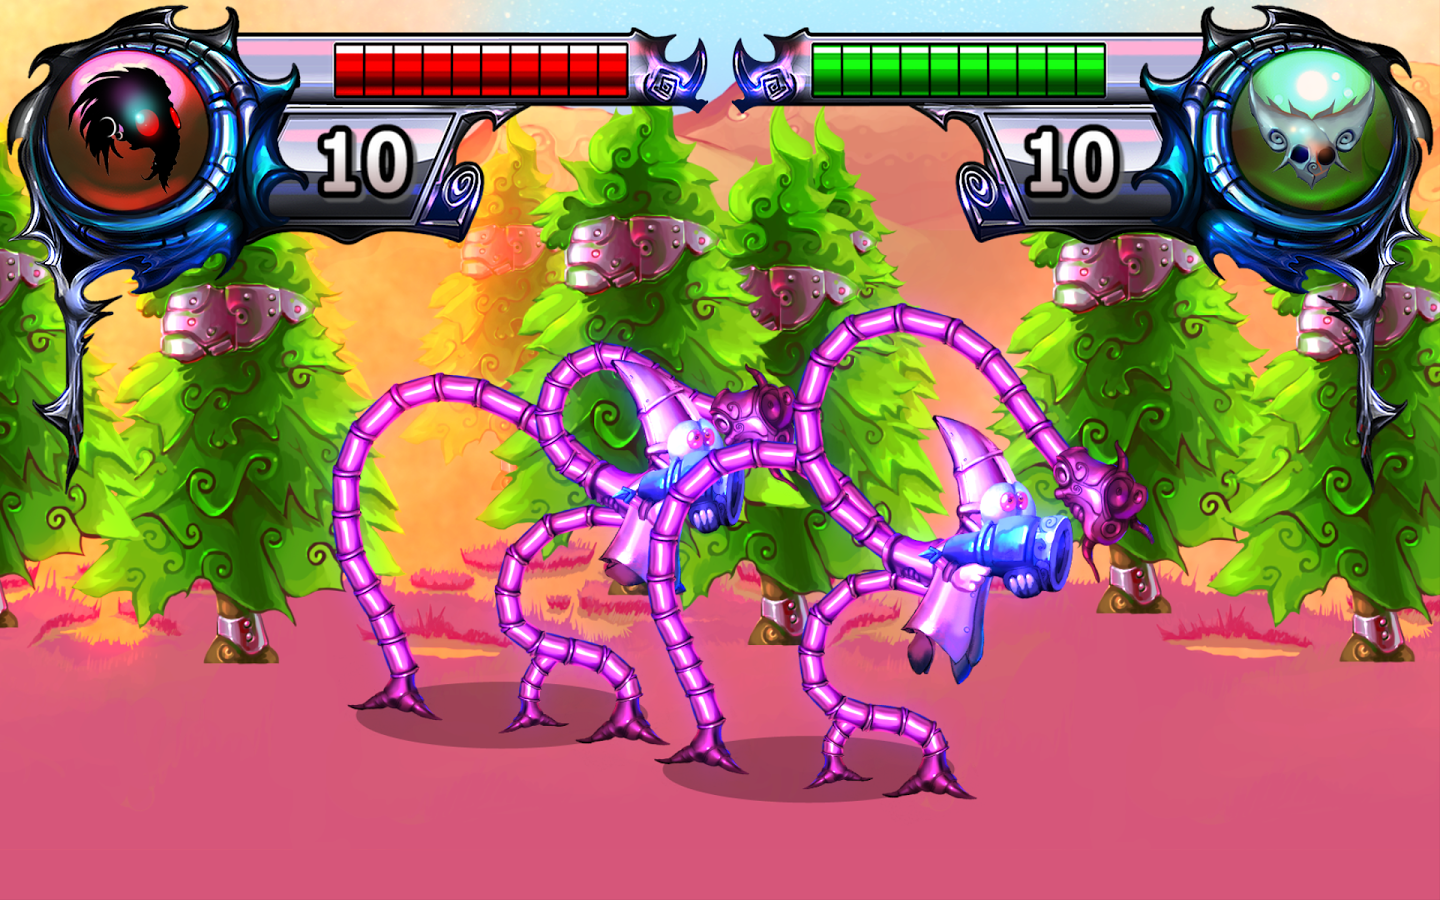 23 Best (And 1 WTF) New Android Games From The Last 2 Weeks (8/20/13 - 9/2/2013)